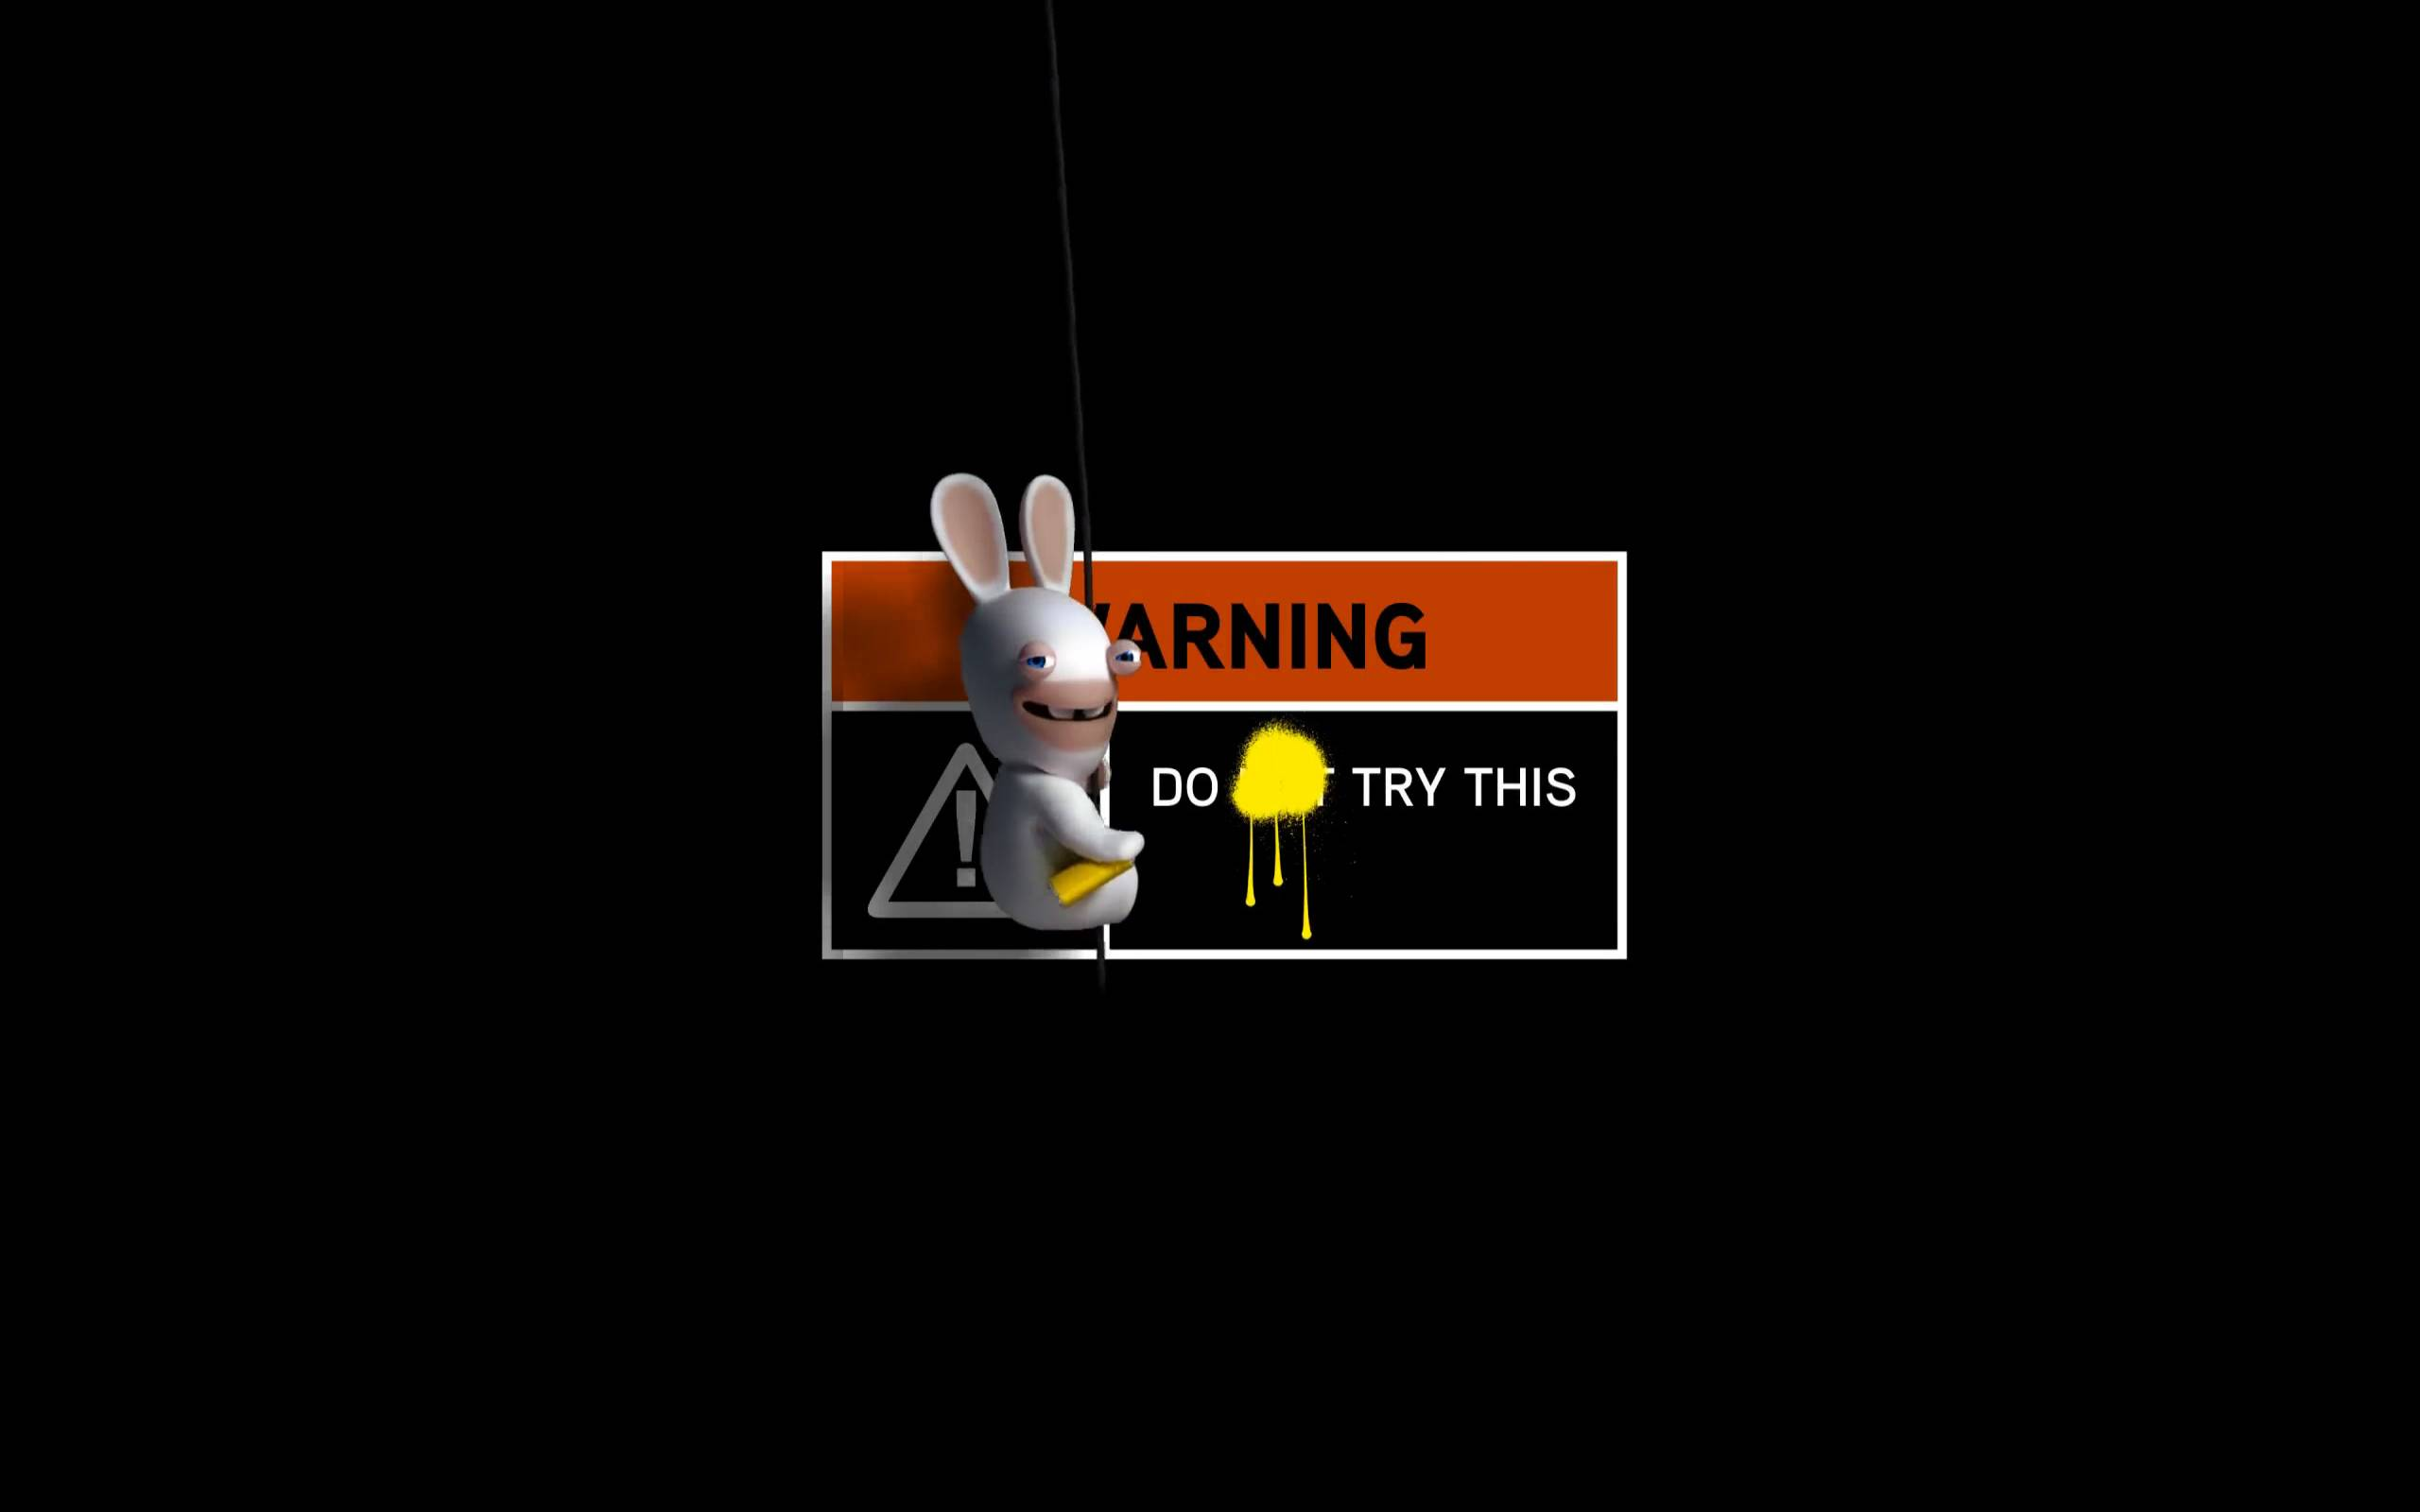 RRTiT, toilet paper race, Rayman, Raving, Rabbits, do try this обои, картинки, фото